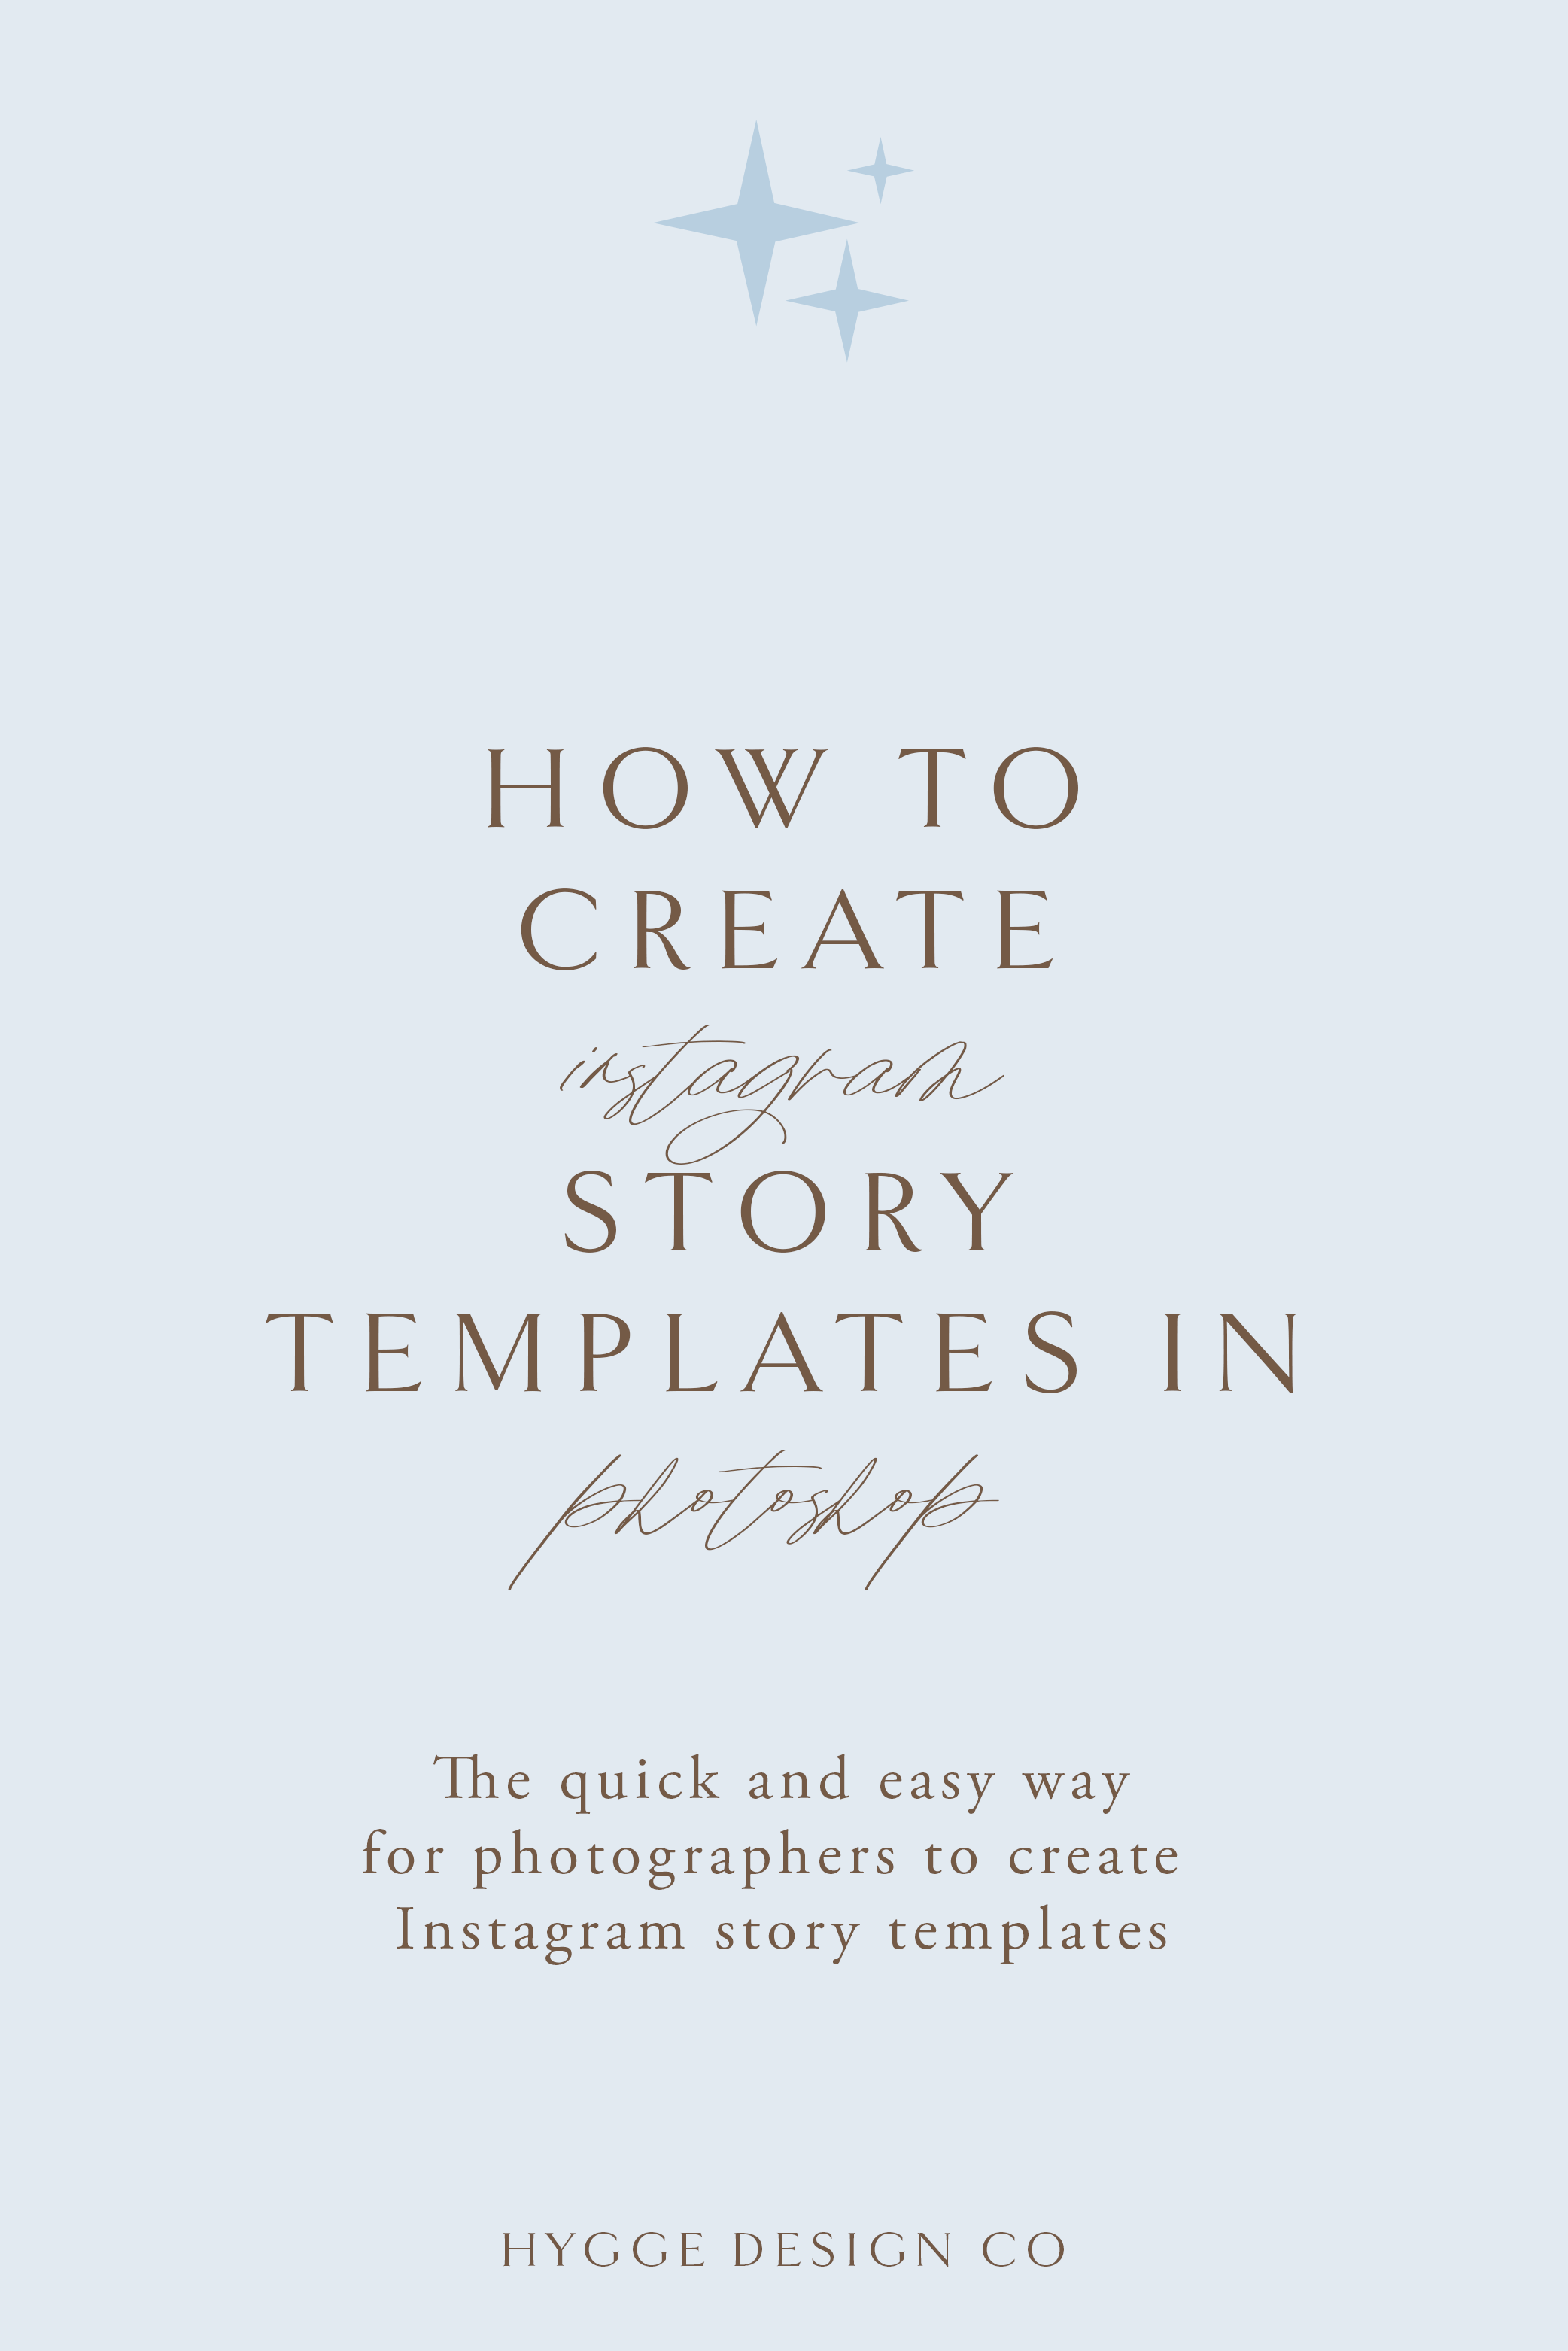 How to create Instagram story templates in in